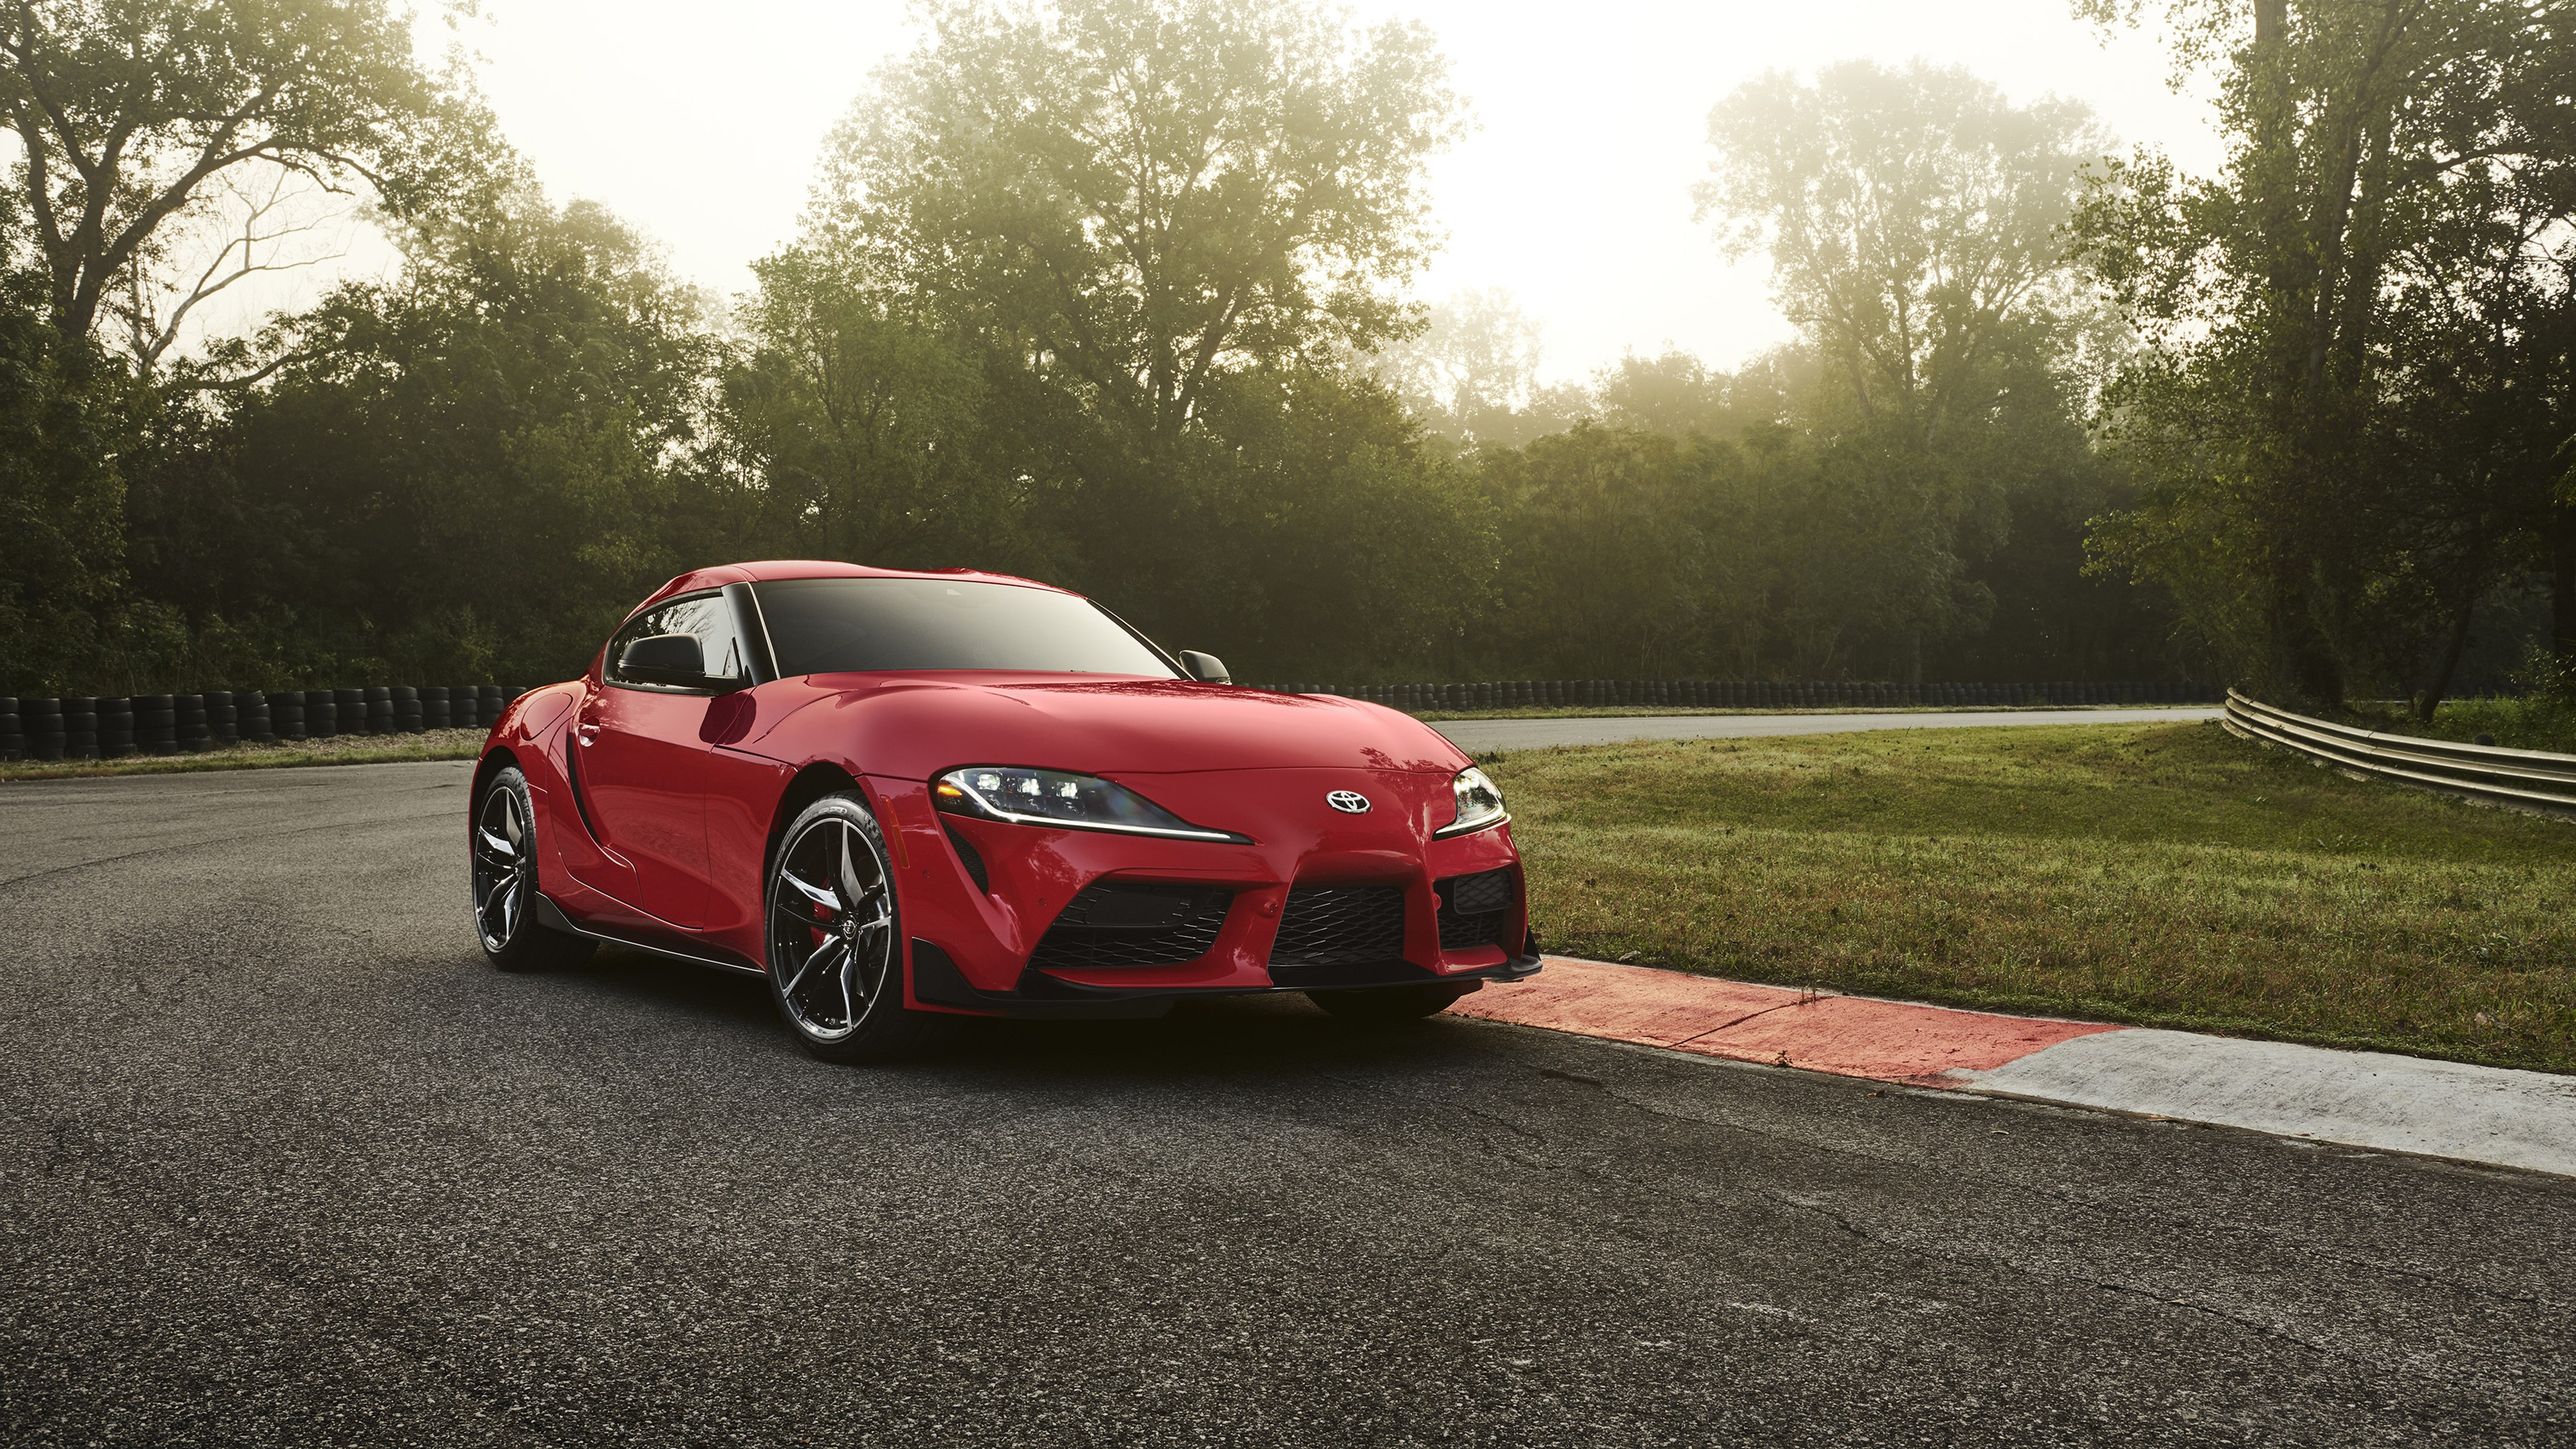 2020 Toyota GR Supra 4K Wallpaper | HD Car Wallpapers | ID #11858